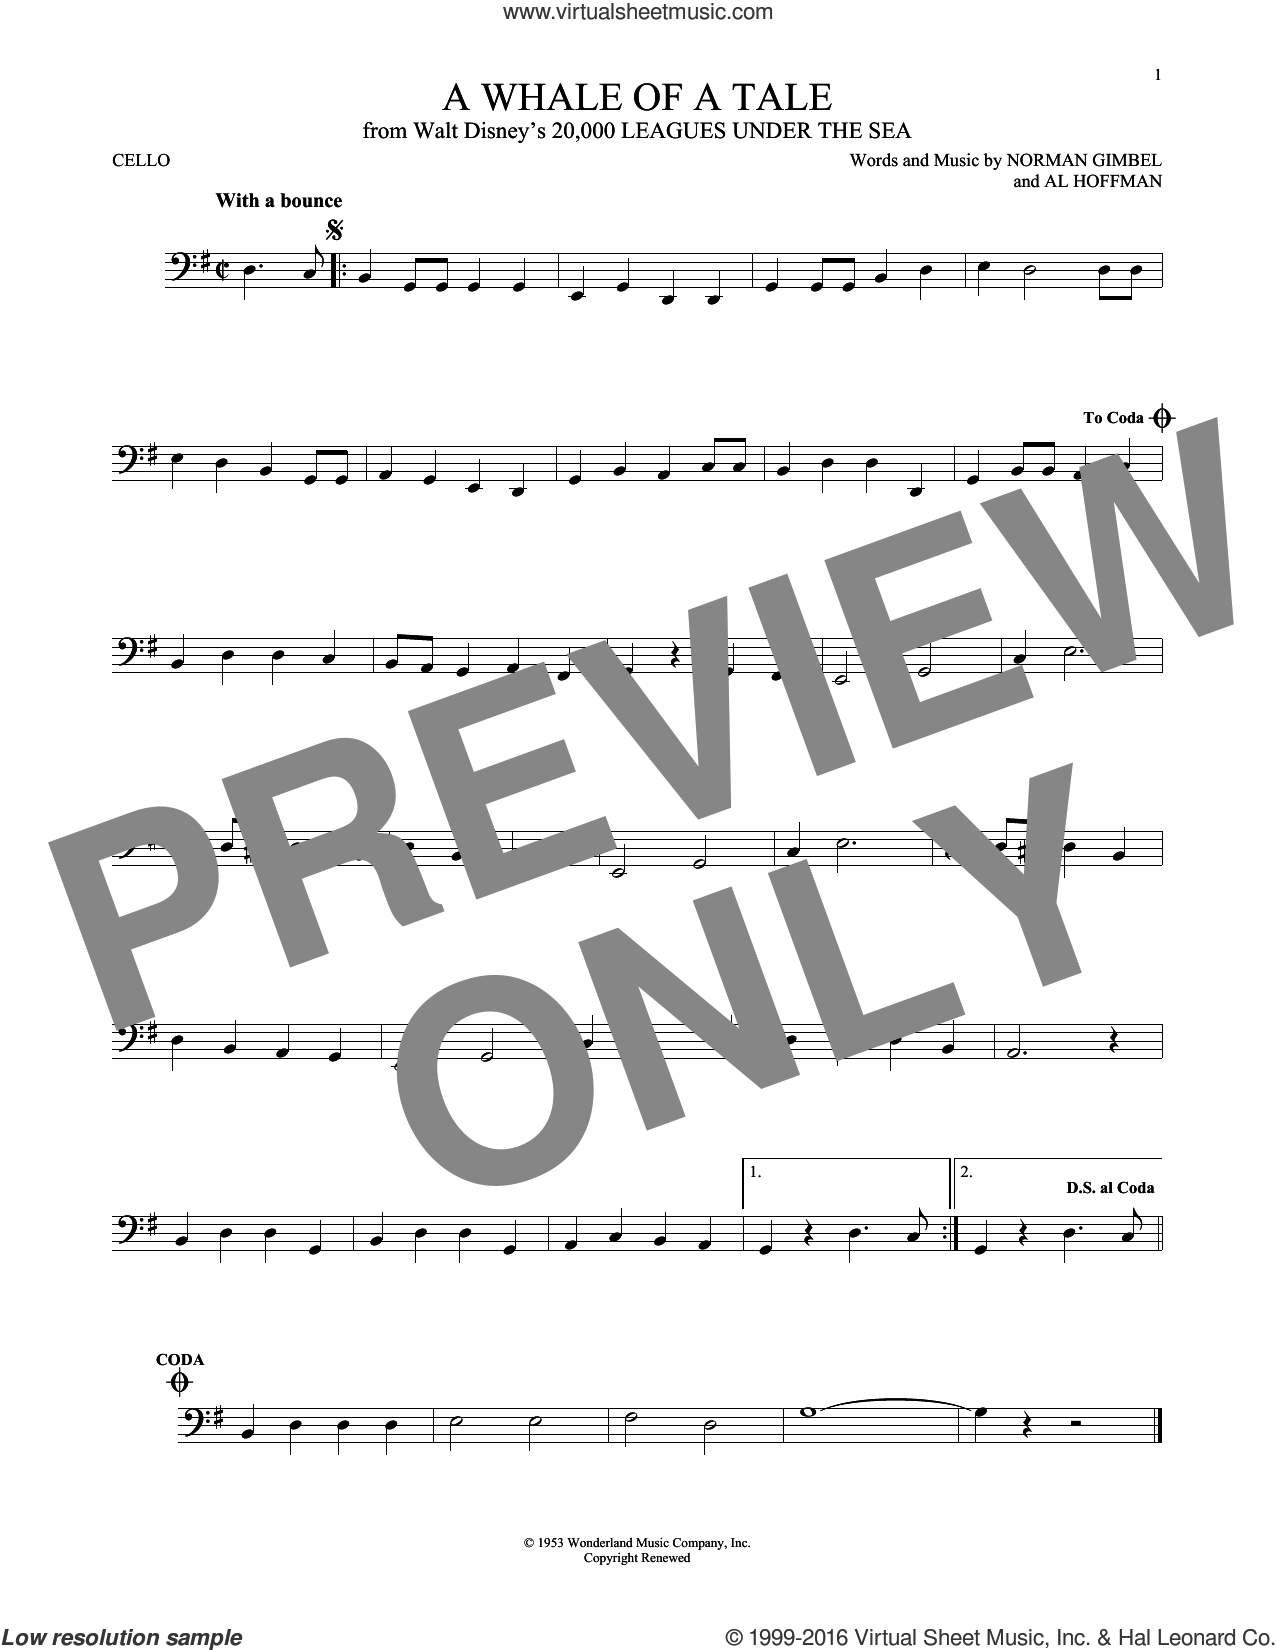 A Whale Of A Tale sheet music for cello solo by Norman Gimbel, Al Hoffman and Norman Gimbel & Al Hoffman, intermediate skill level